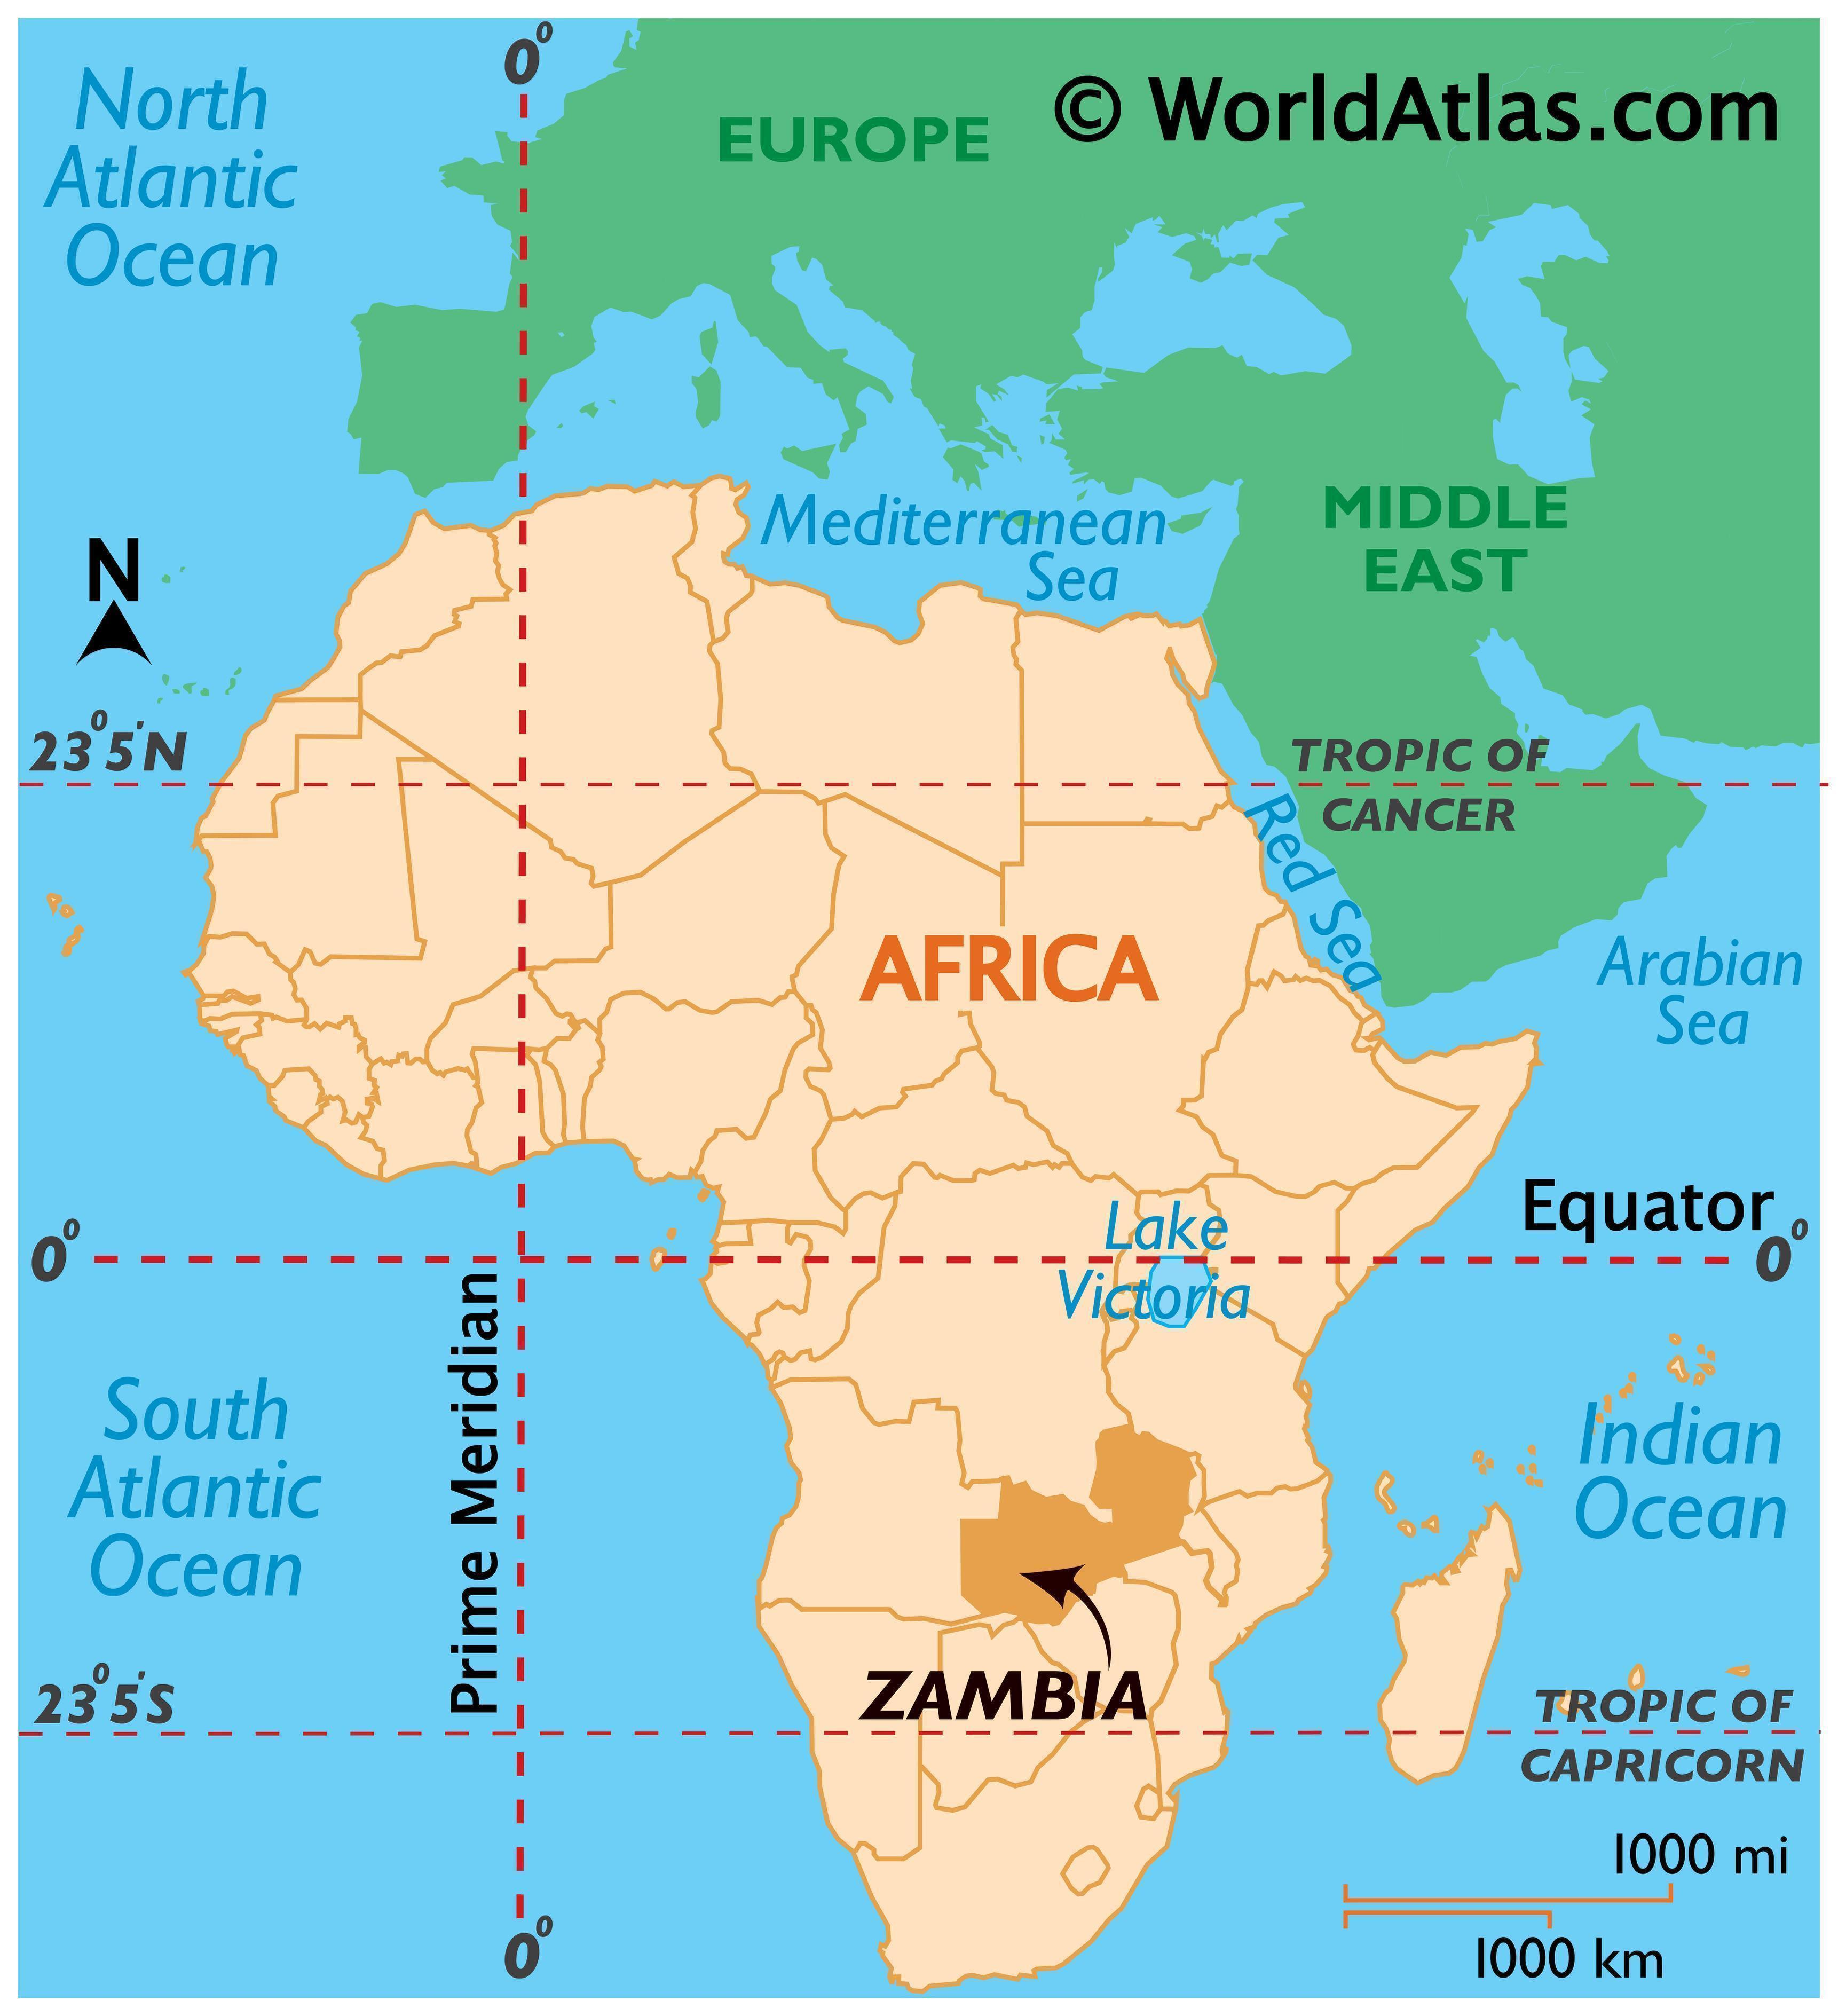 Where is Zambia?